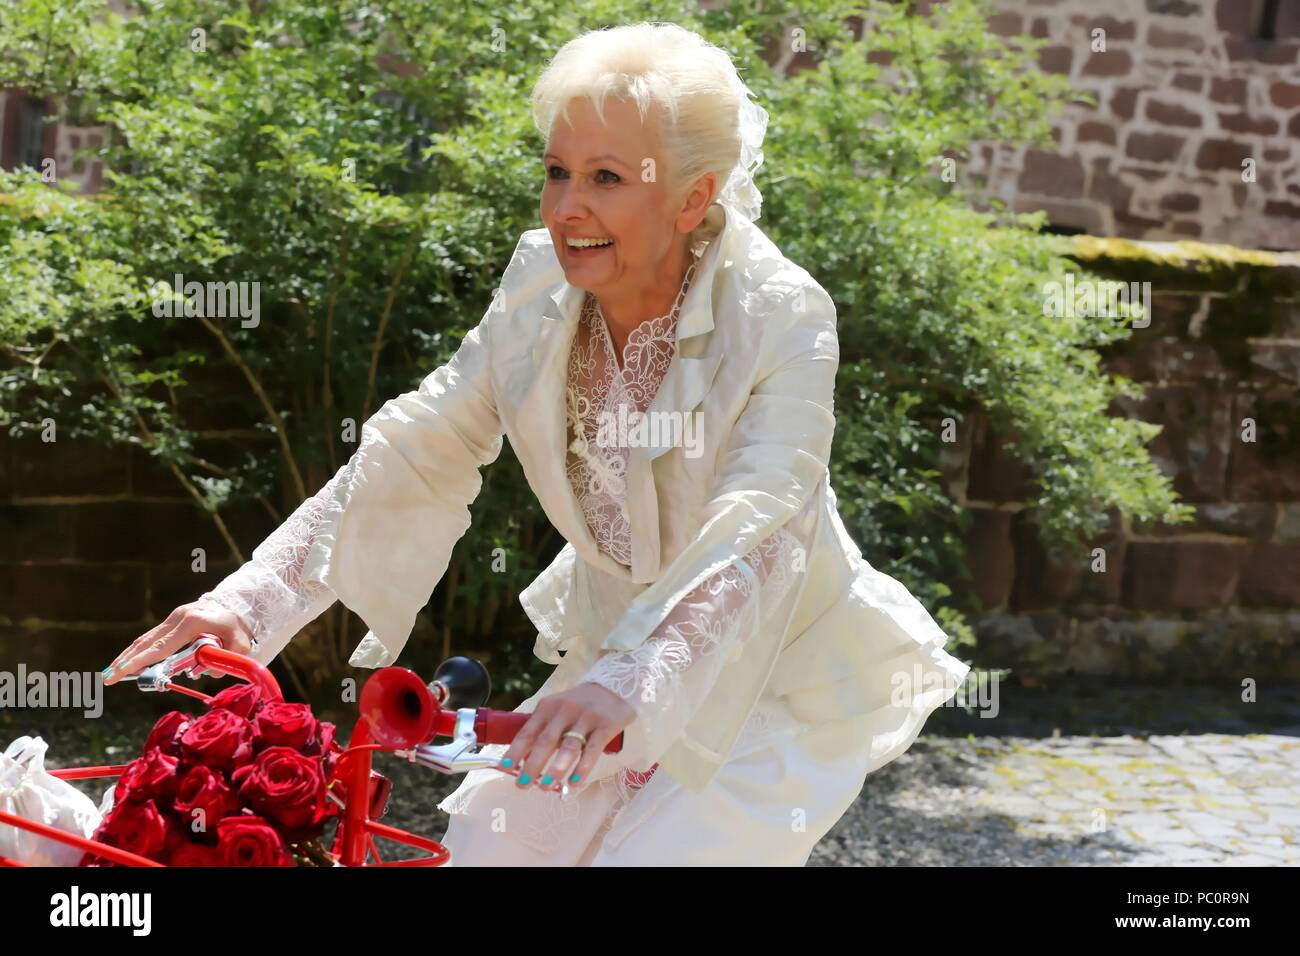 Bride radiant with joy in a romantic designer bridal suit with the red bicycle on the way to the wedding ceremony - Stock Image